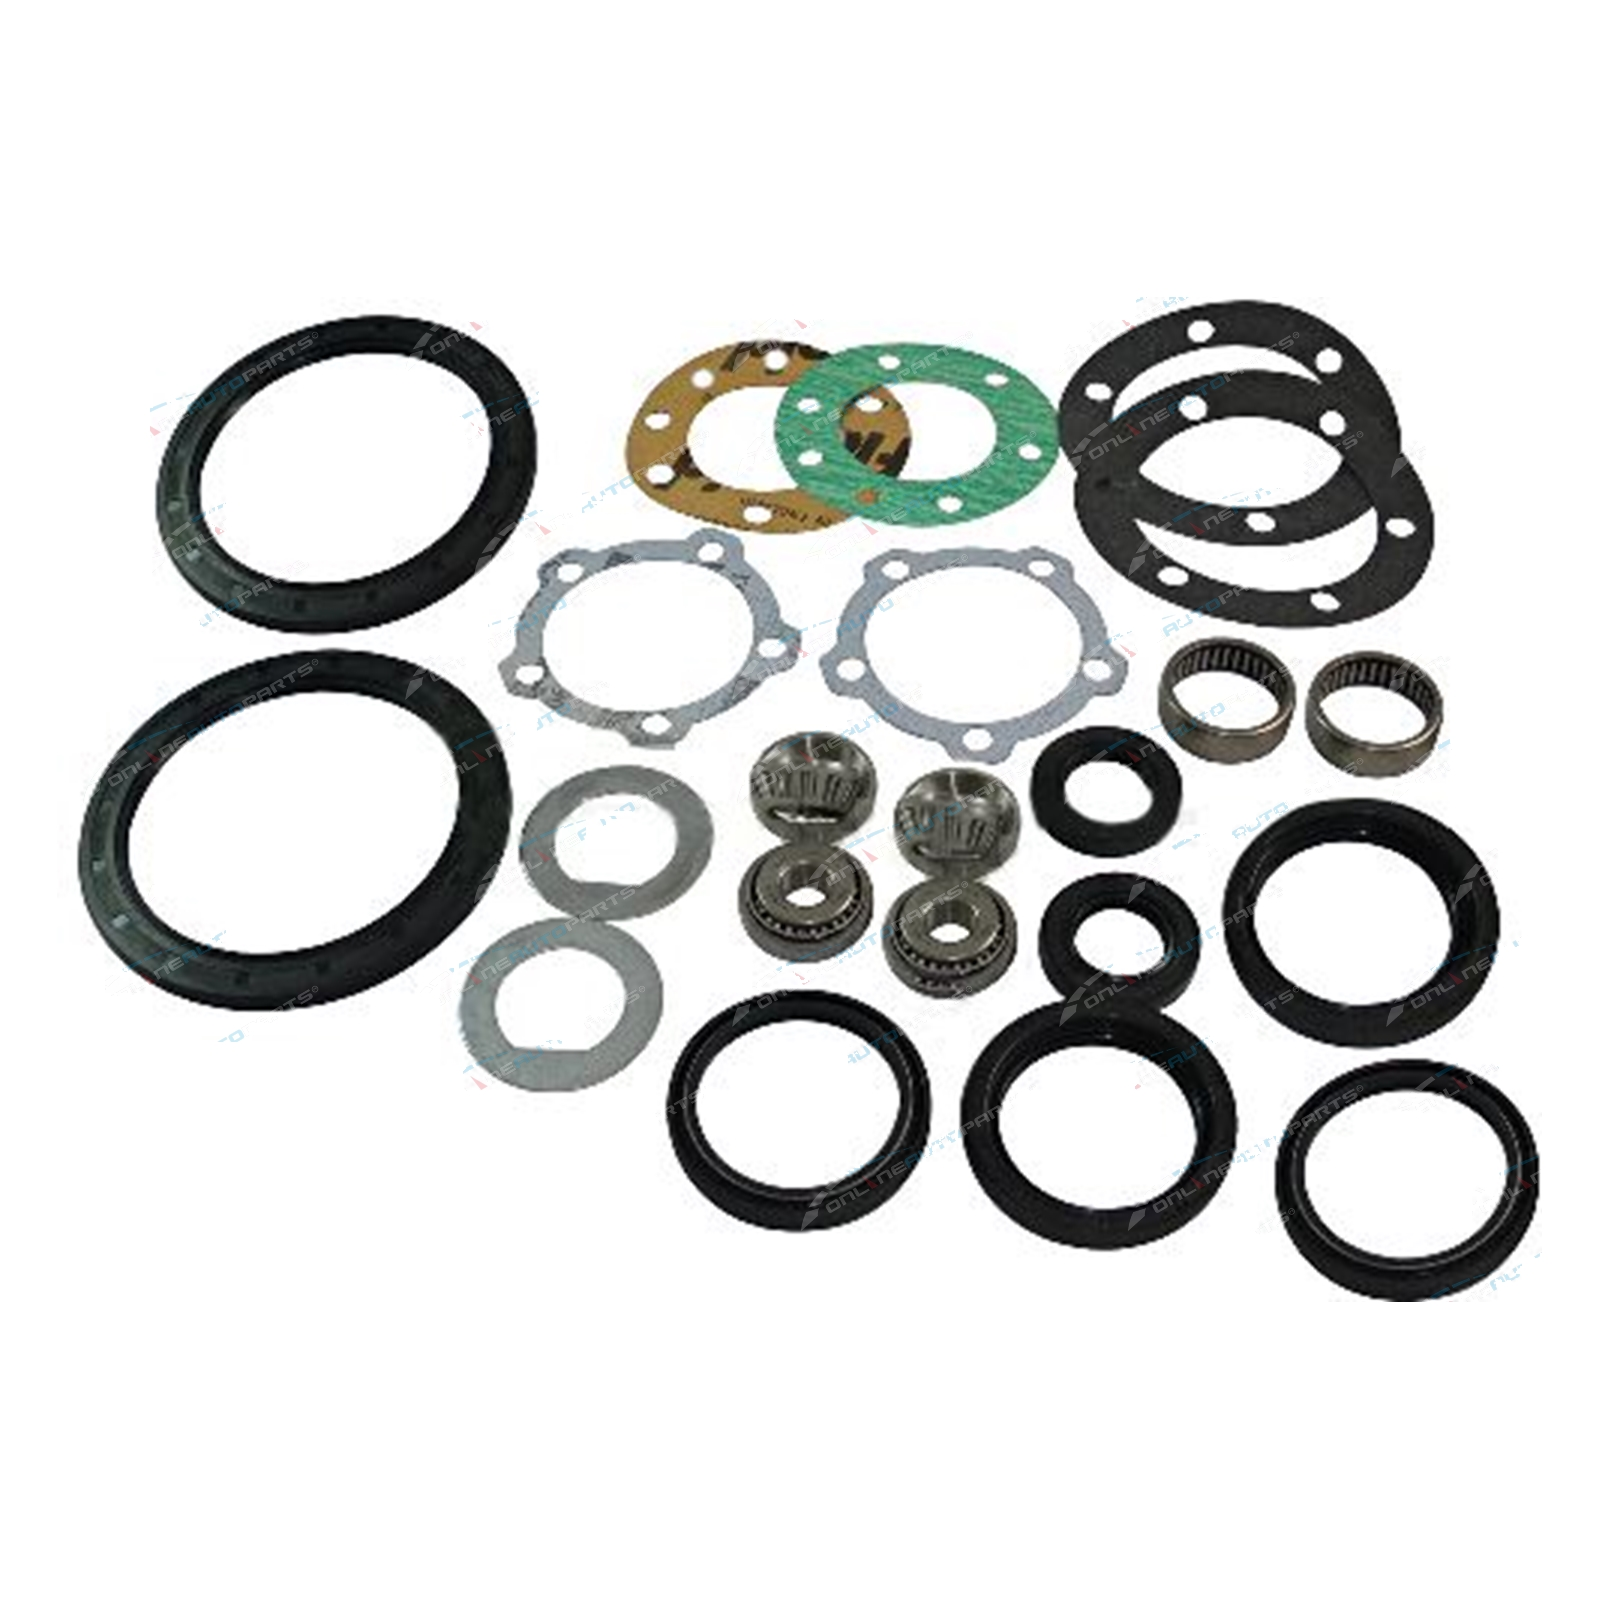 Range Rover 1992-1995 non ABS Swivel Hub Kit